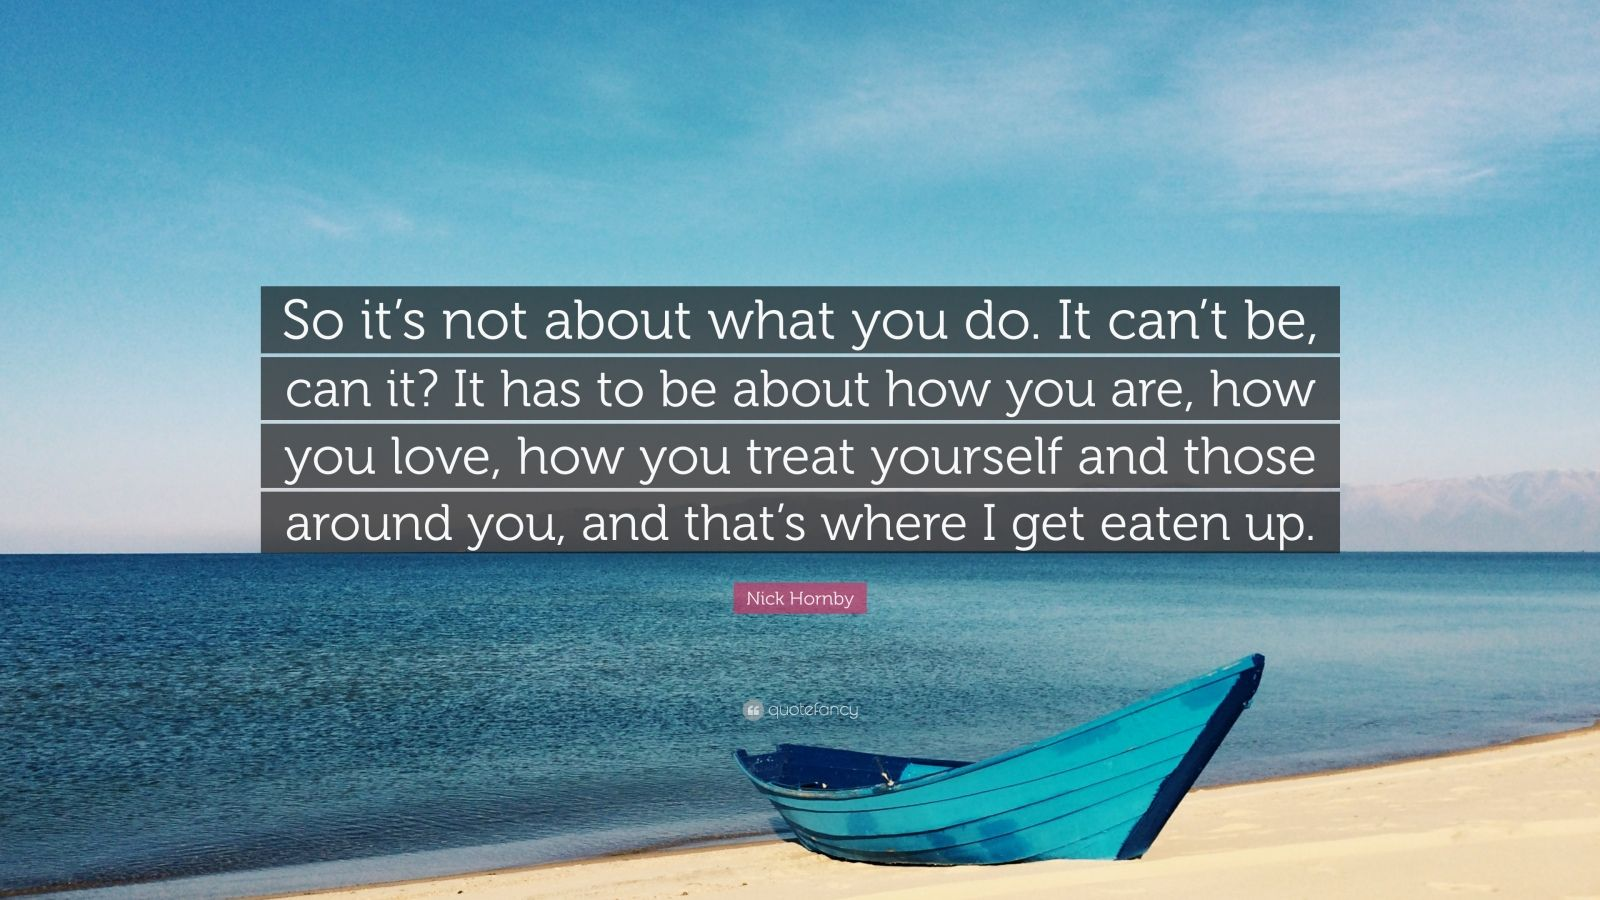 """Nick Hornby Quote: """"So it's not about what you do. It can't be, can it? It has to be about how you are, how you love, how you treat yourself and those around you, and that's where I get eaten up."""""""